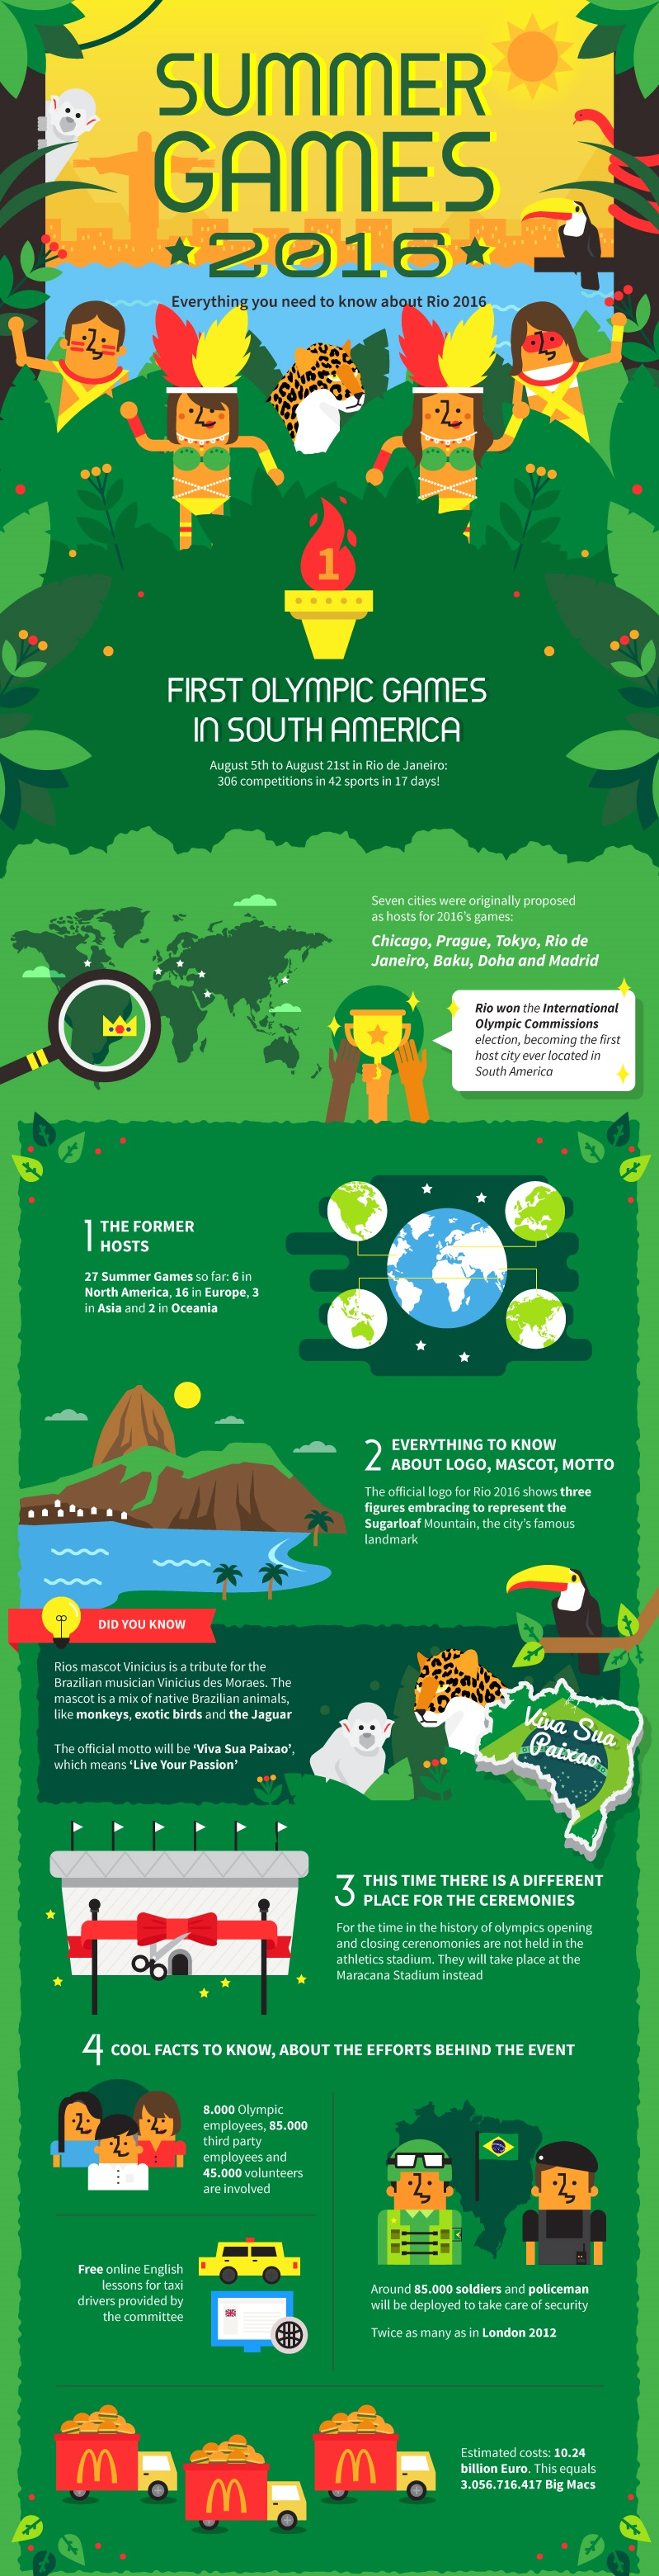 Rio, Olympics, 2016, Olympic Games, Infographic, Sporting Events